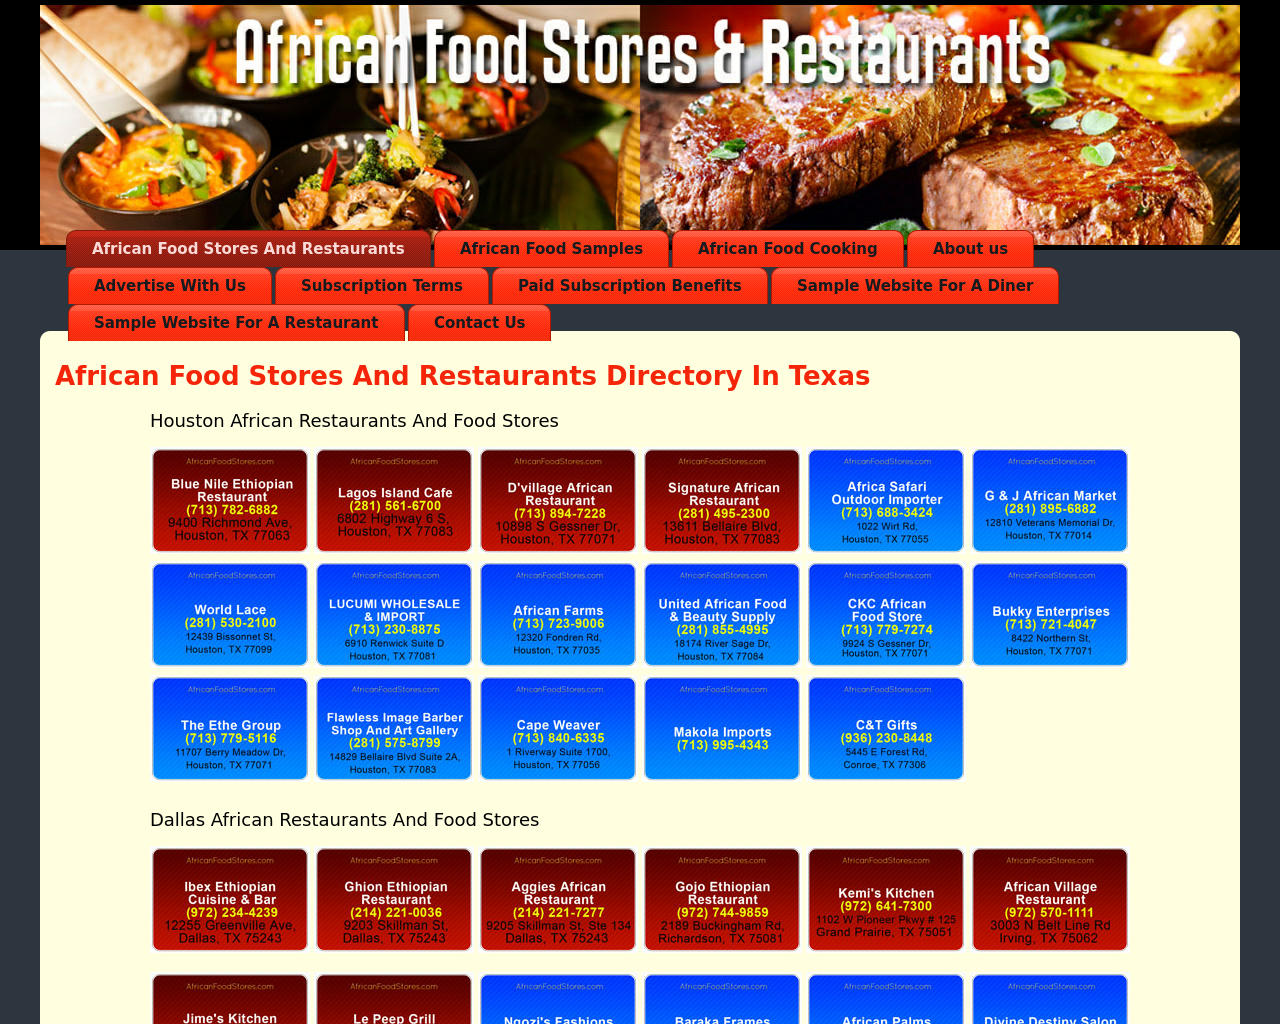 African-Food-Stores-&-Restaurants-Advertising-Reviews-Pricing